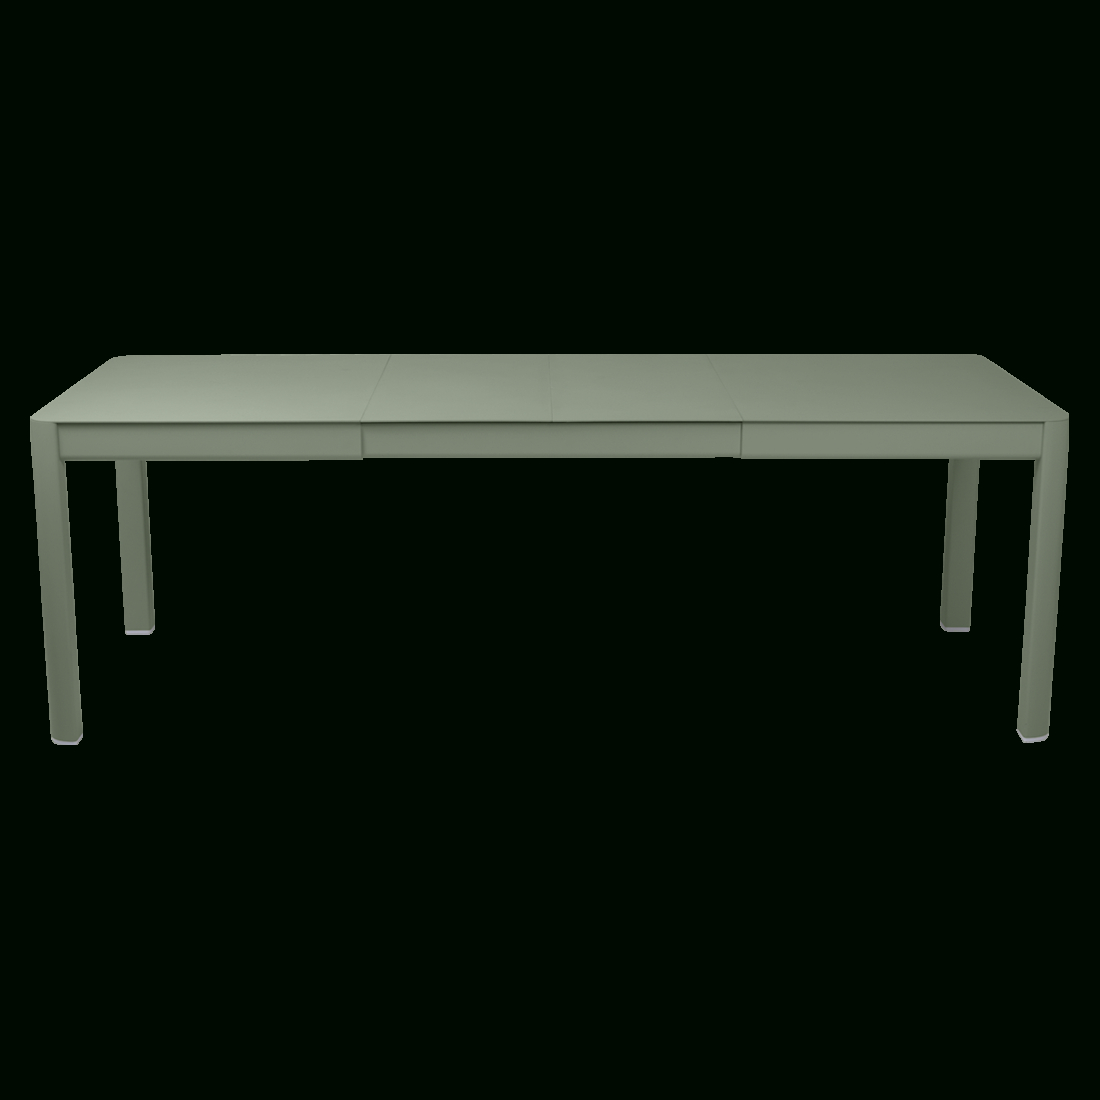 Table Ribambelle 2 Allonges, Table De Jardin, Mobilier De Jardin serapportantà Table Jardin 10 Personnes